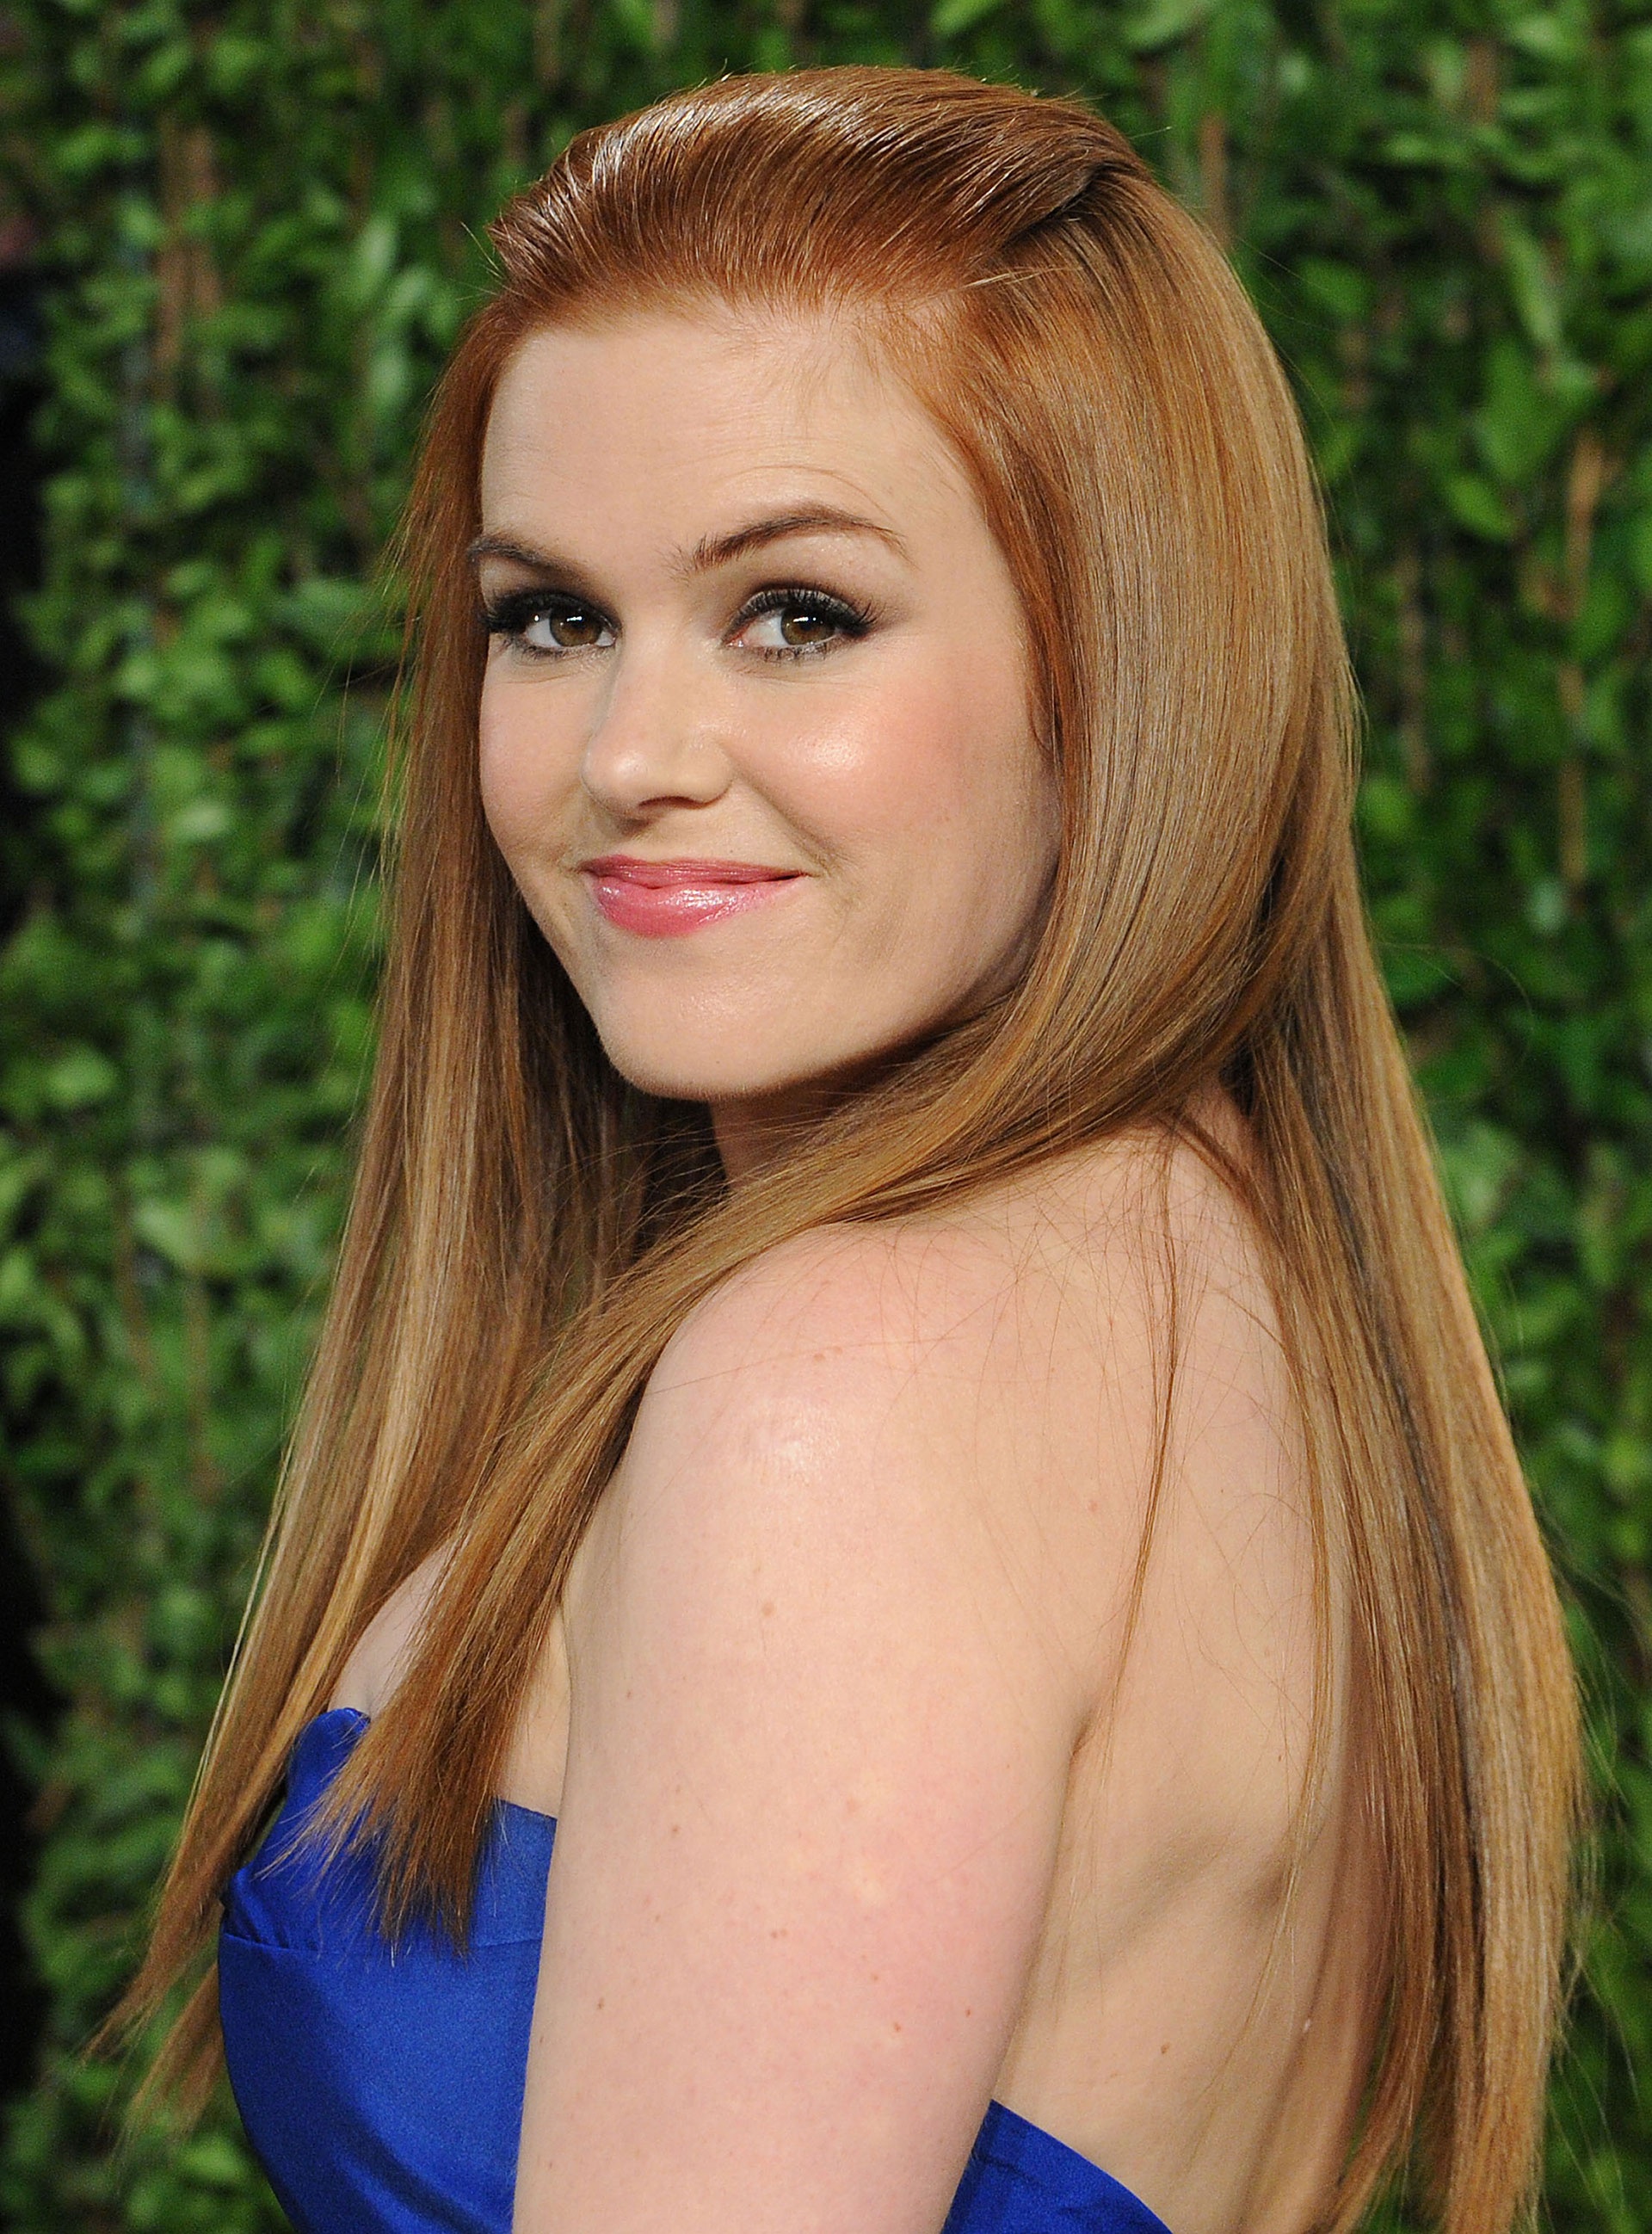 Astounding Red Hairstyles Celebrity Hairstyles For Redheads Short Hairstyles For Black Women Fulllsitofus